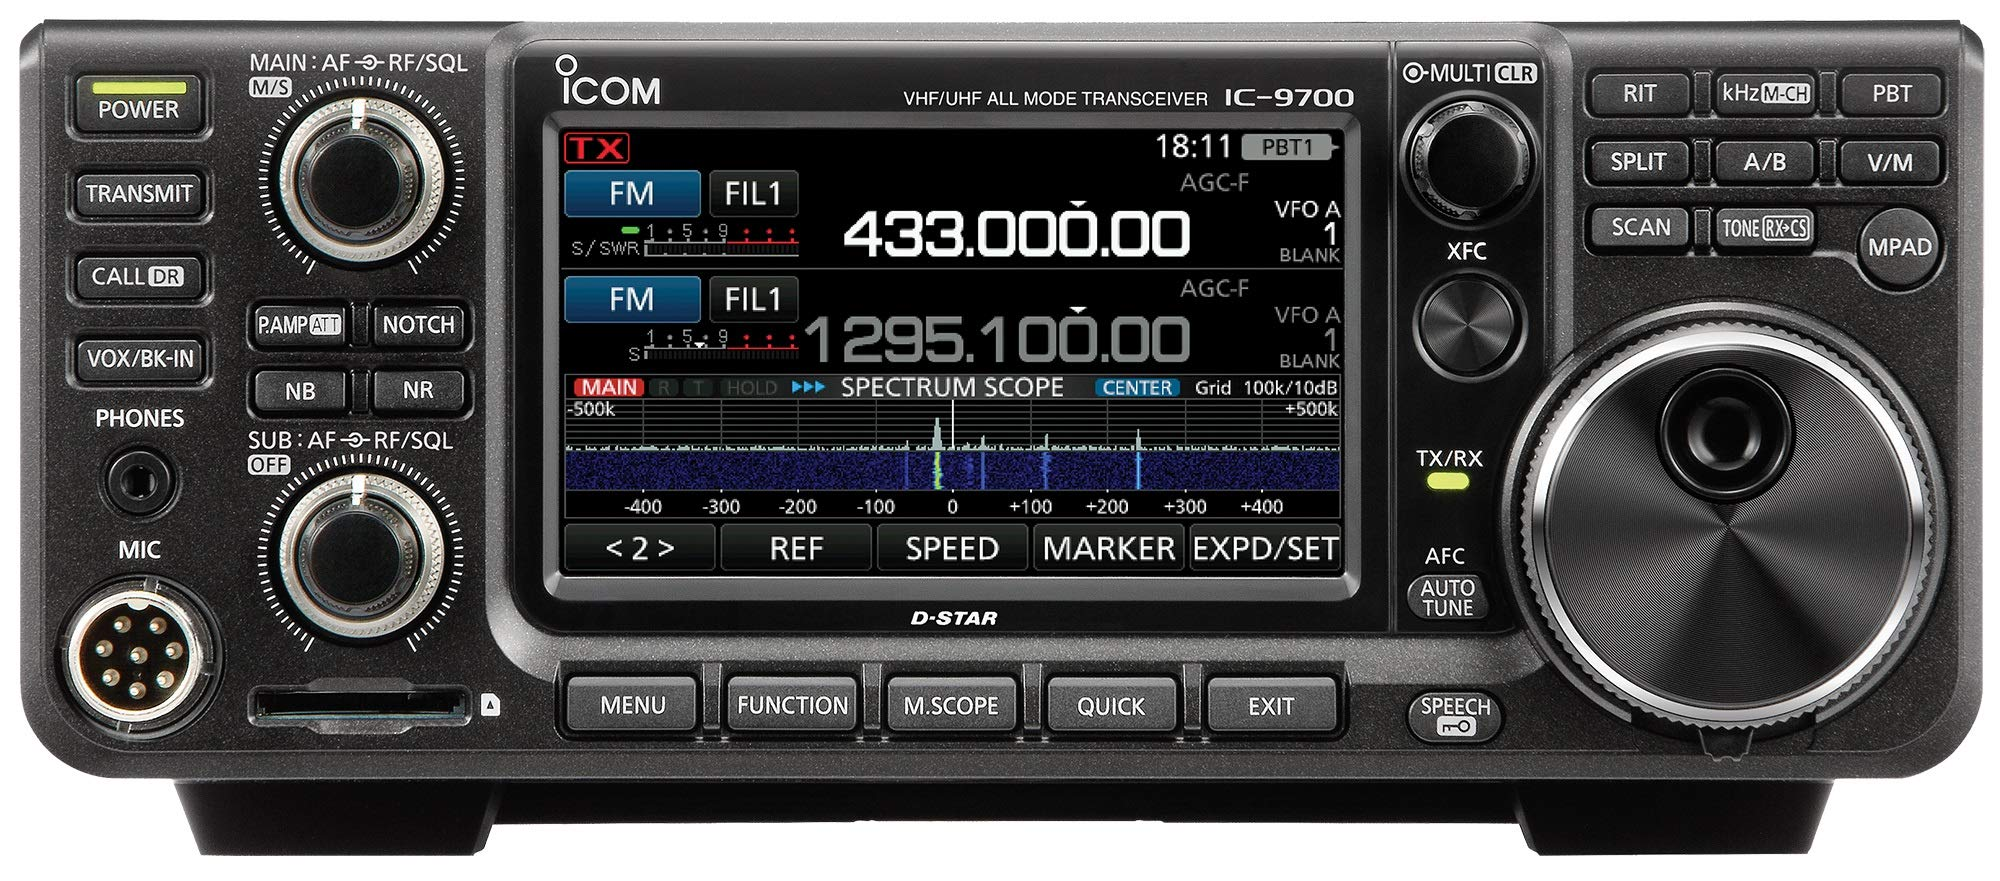 Icom IC-9700 VHF/UHF/1.2GHz D-STAR Base Station Transceiver by ICON (Image #1)